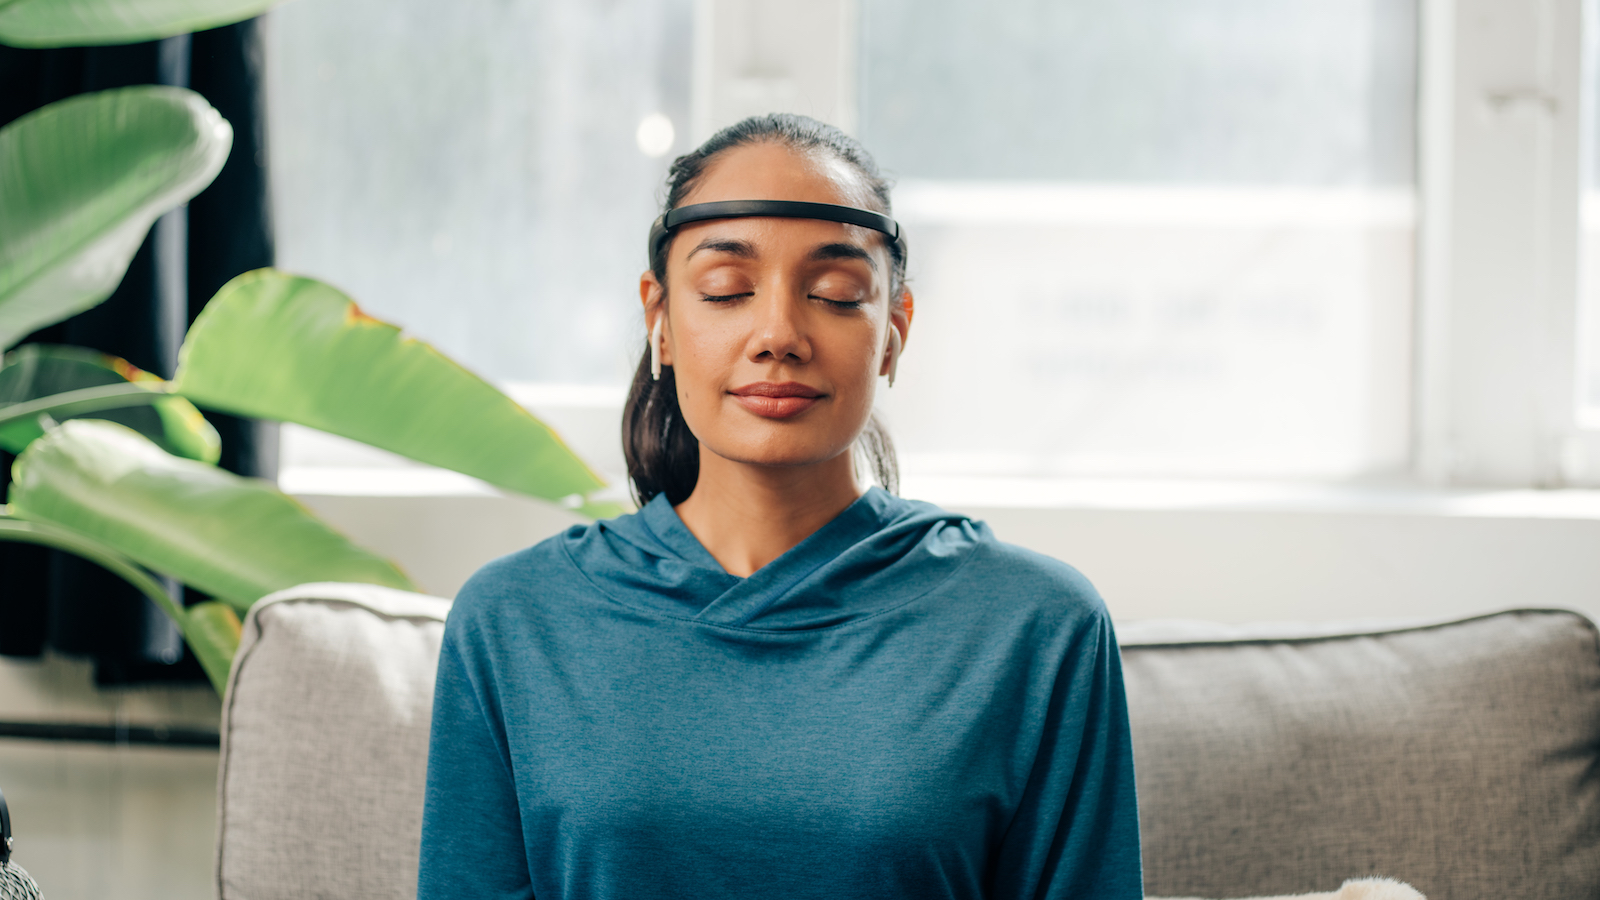 Muse 2 Meditation Headband monitors your breathing technique